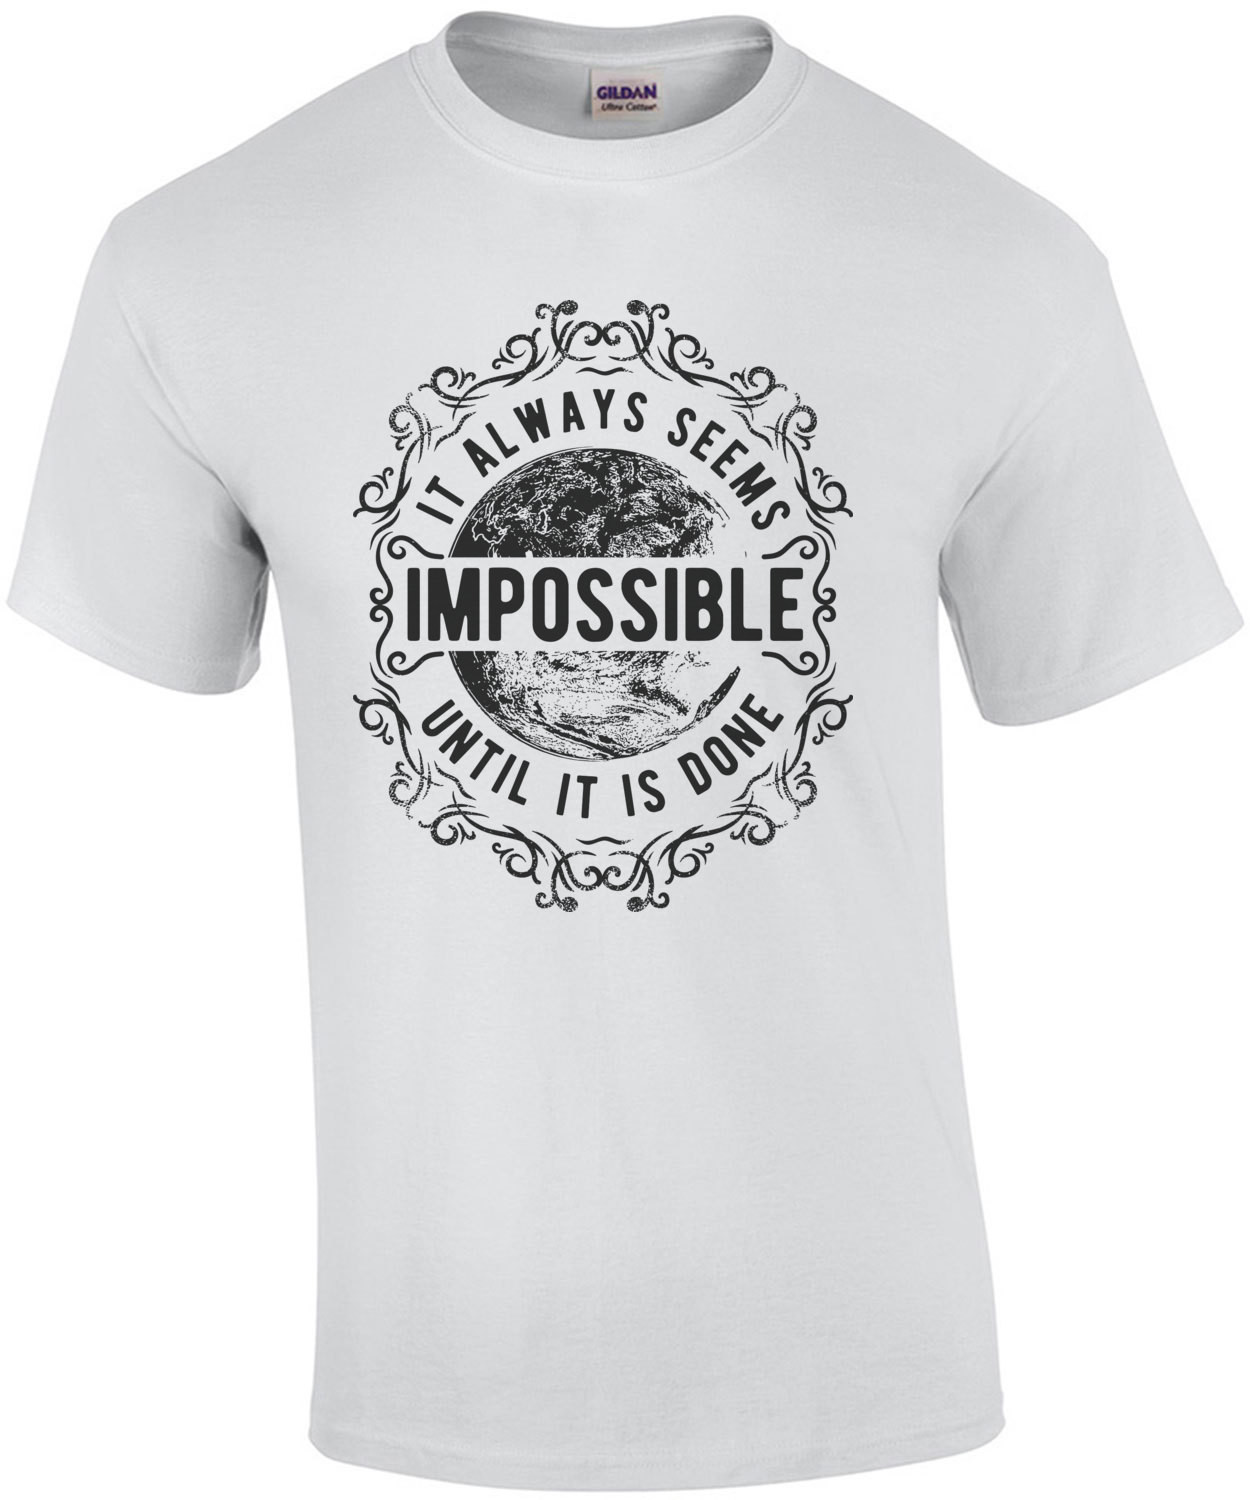 It Always Seems I'mpossible Until It Is Done T-Shirt